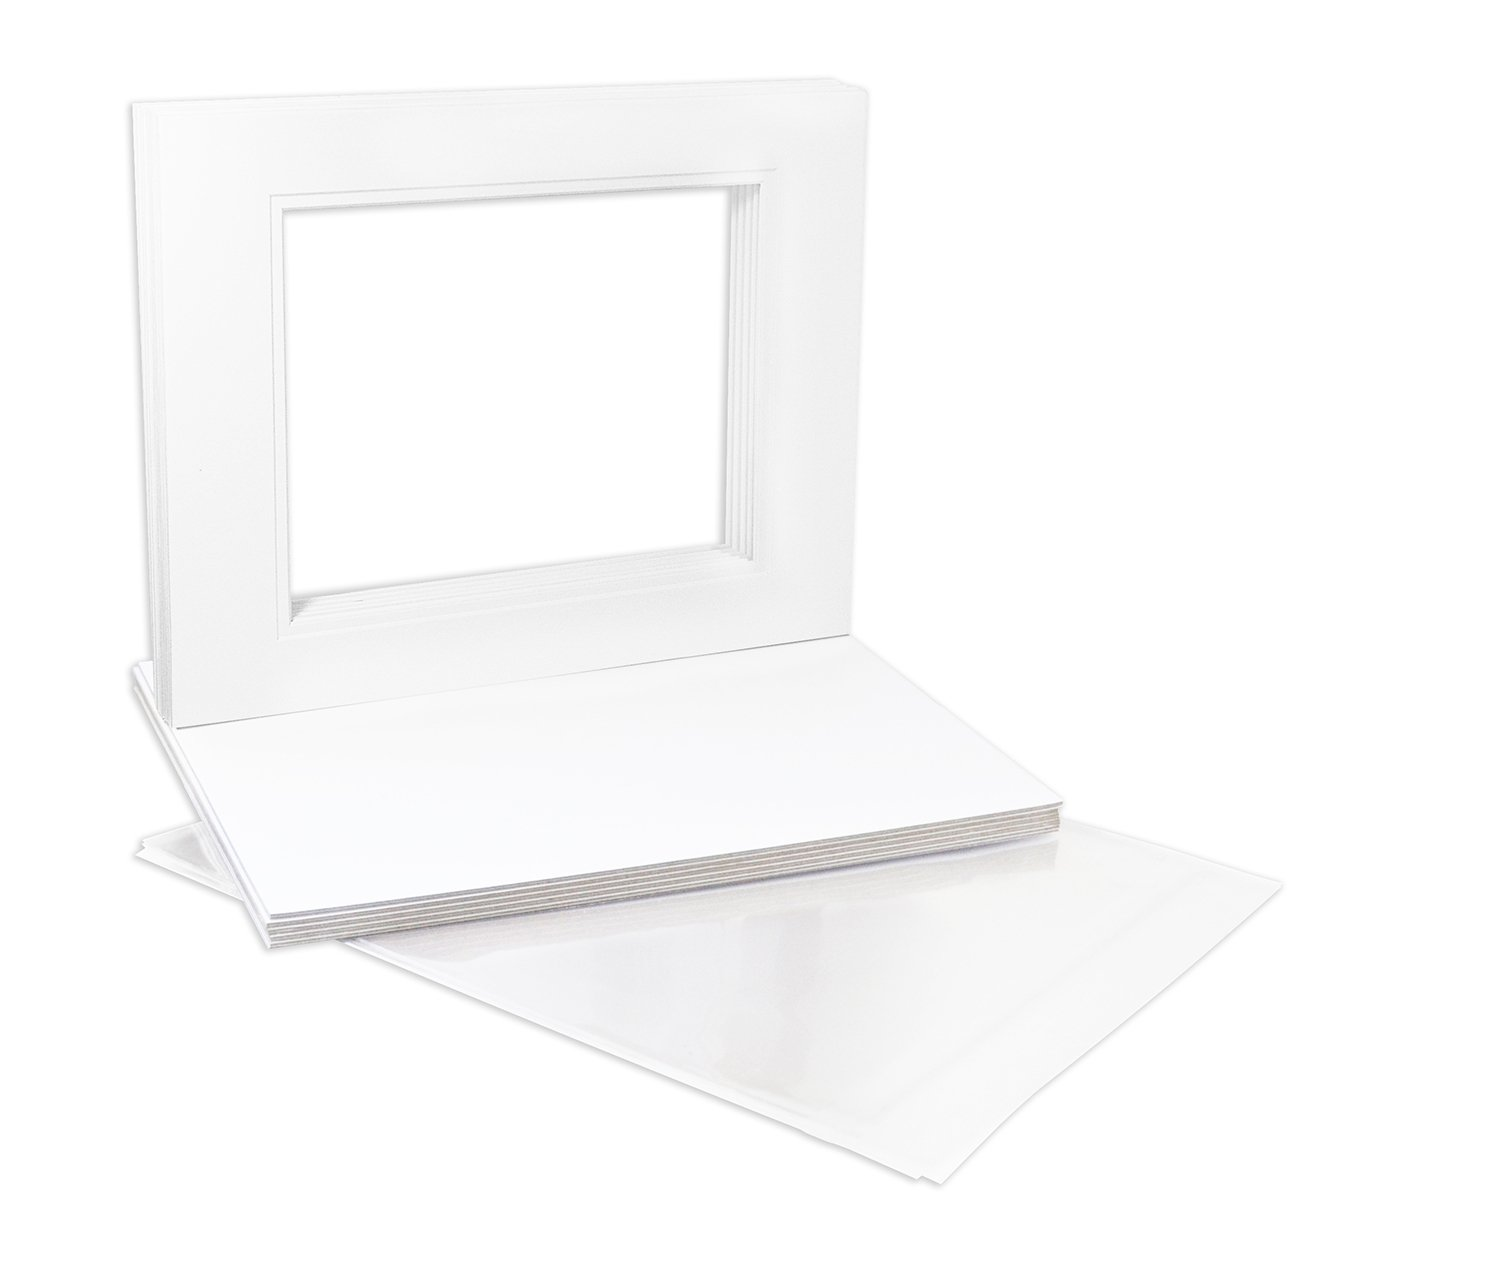 Pack of 10 16x20 White/White Double Mats Mattes with White Core Bevel Cut for 11x14 Photo + Backing + Bags